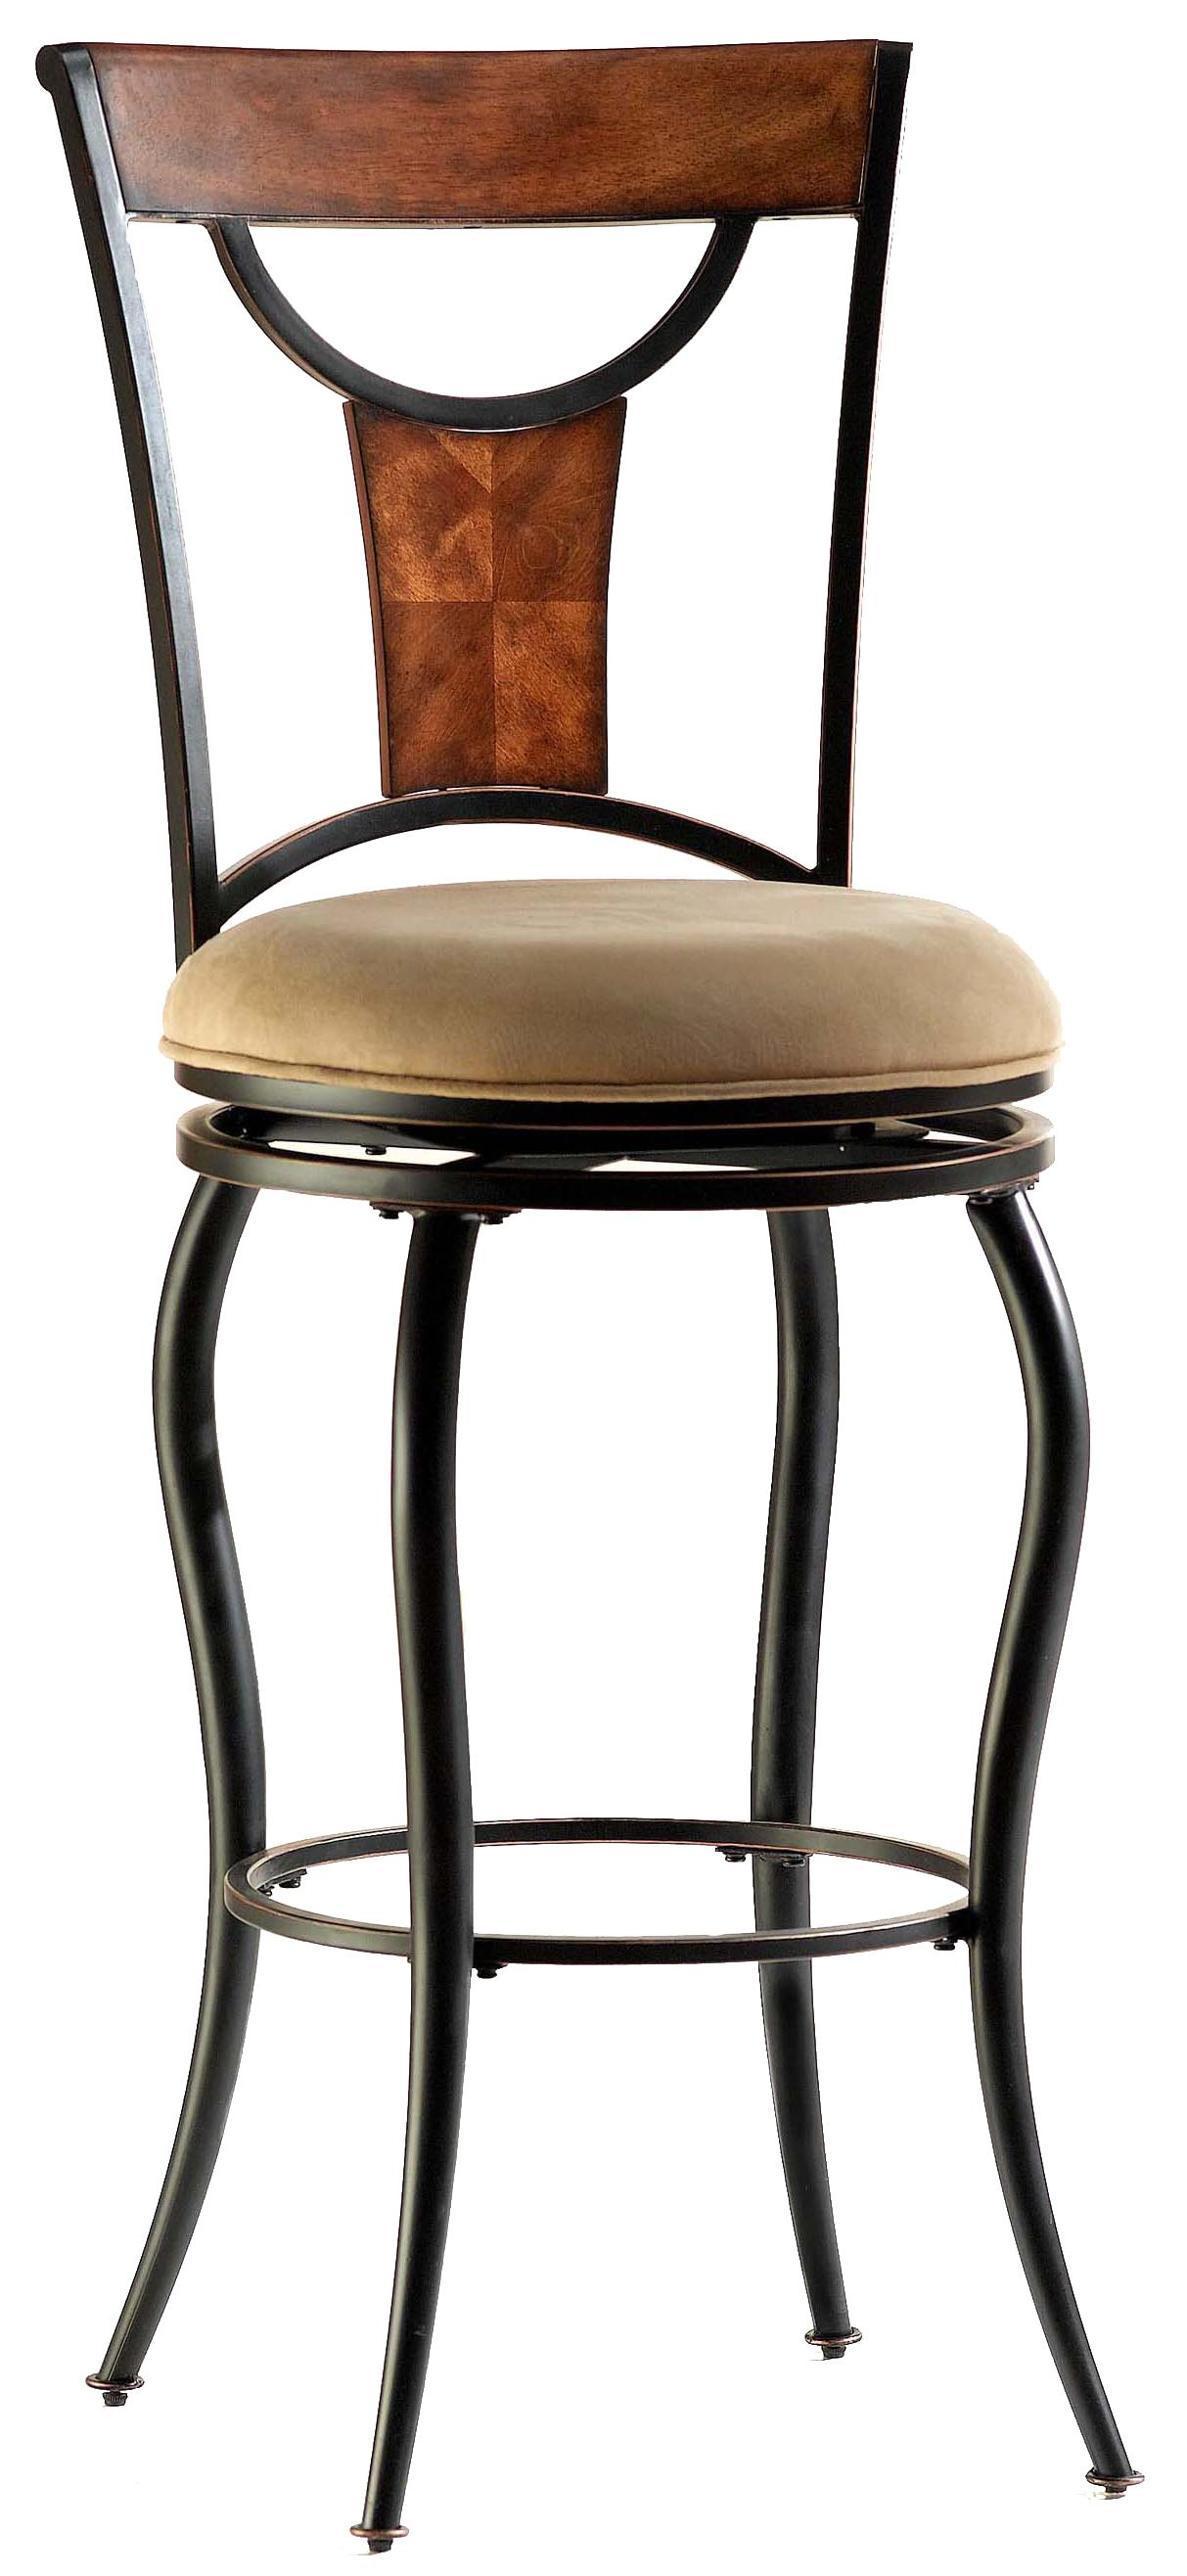 "Hillsdale Metal Stools 30"" Bar Height Pacifico Stool - Item Number: 4137-830"